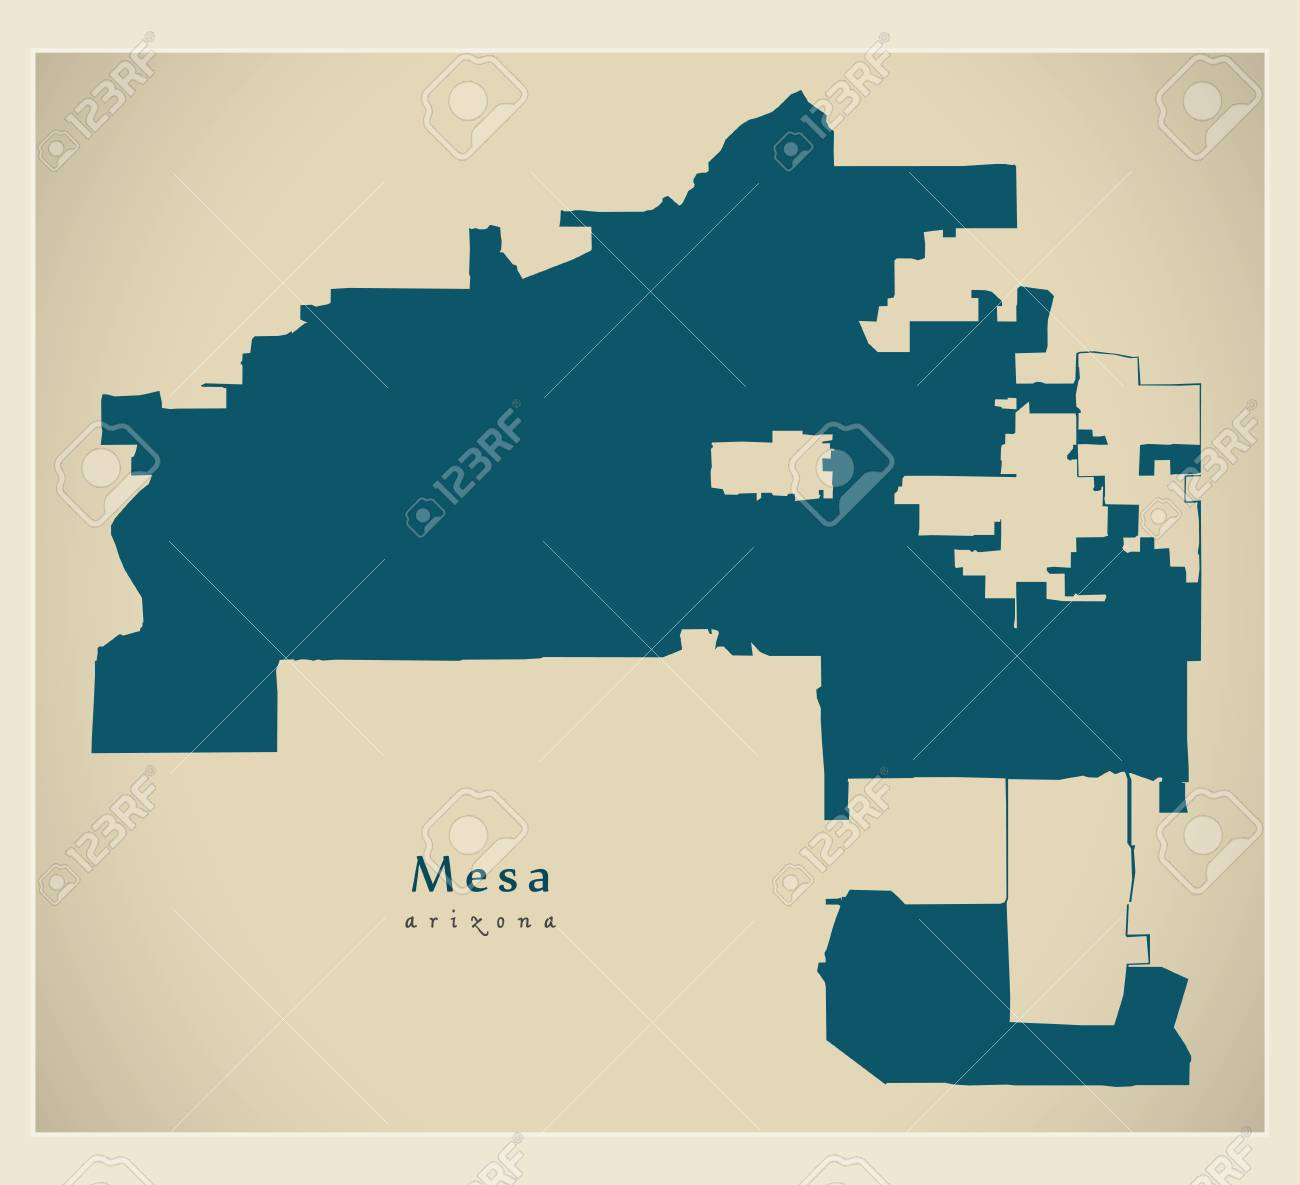 Modern City Map - Mesa Arizona city of the USA